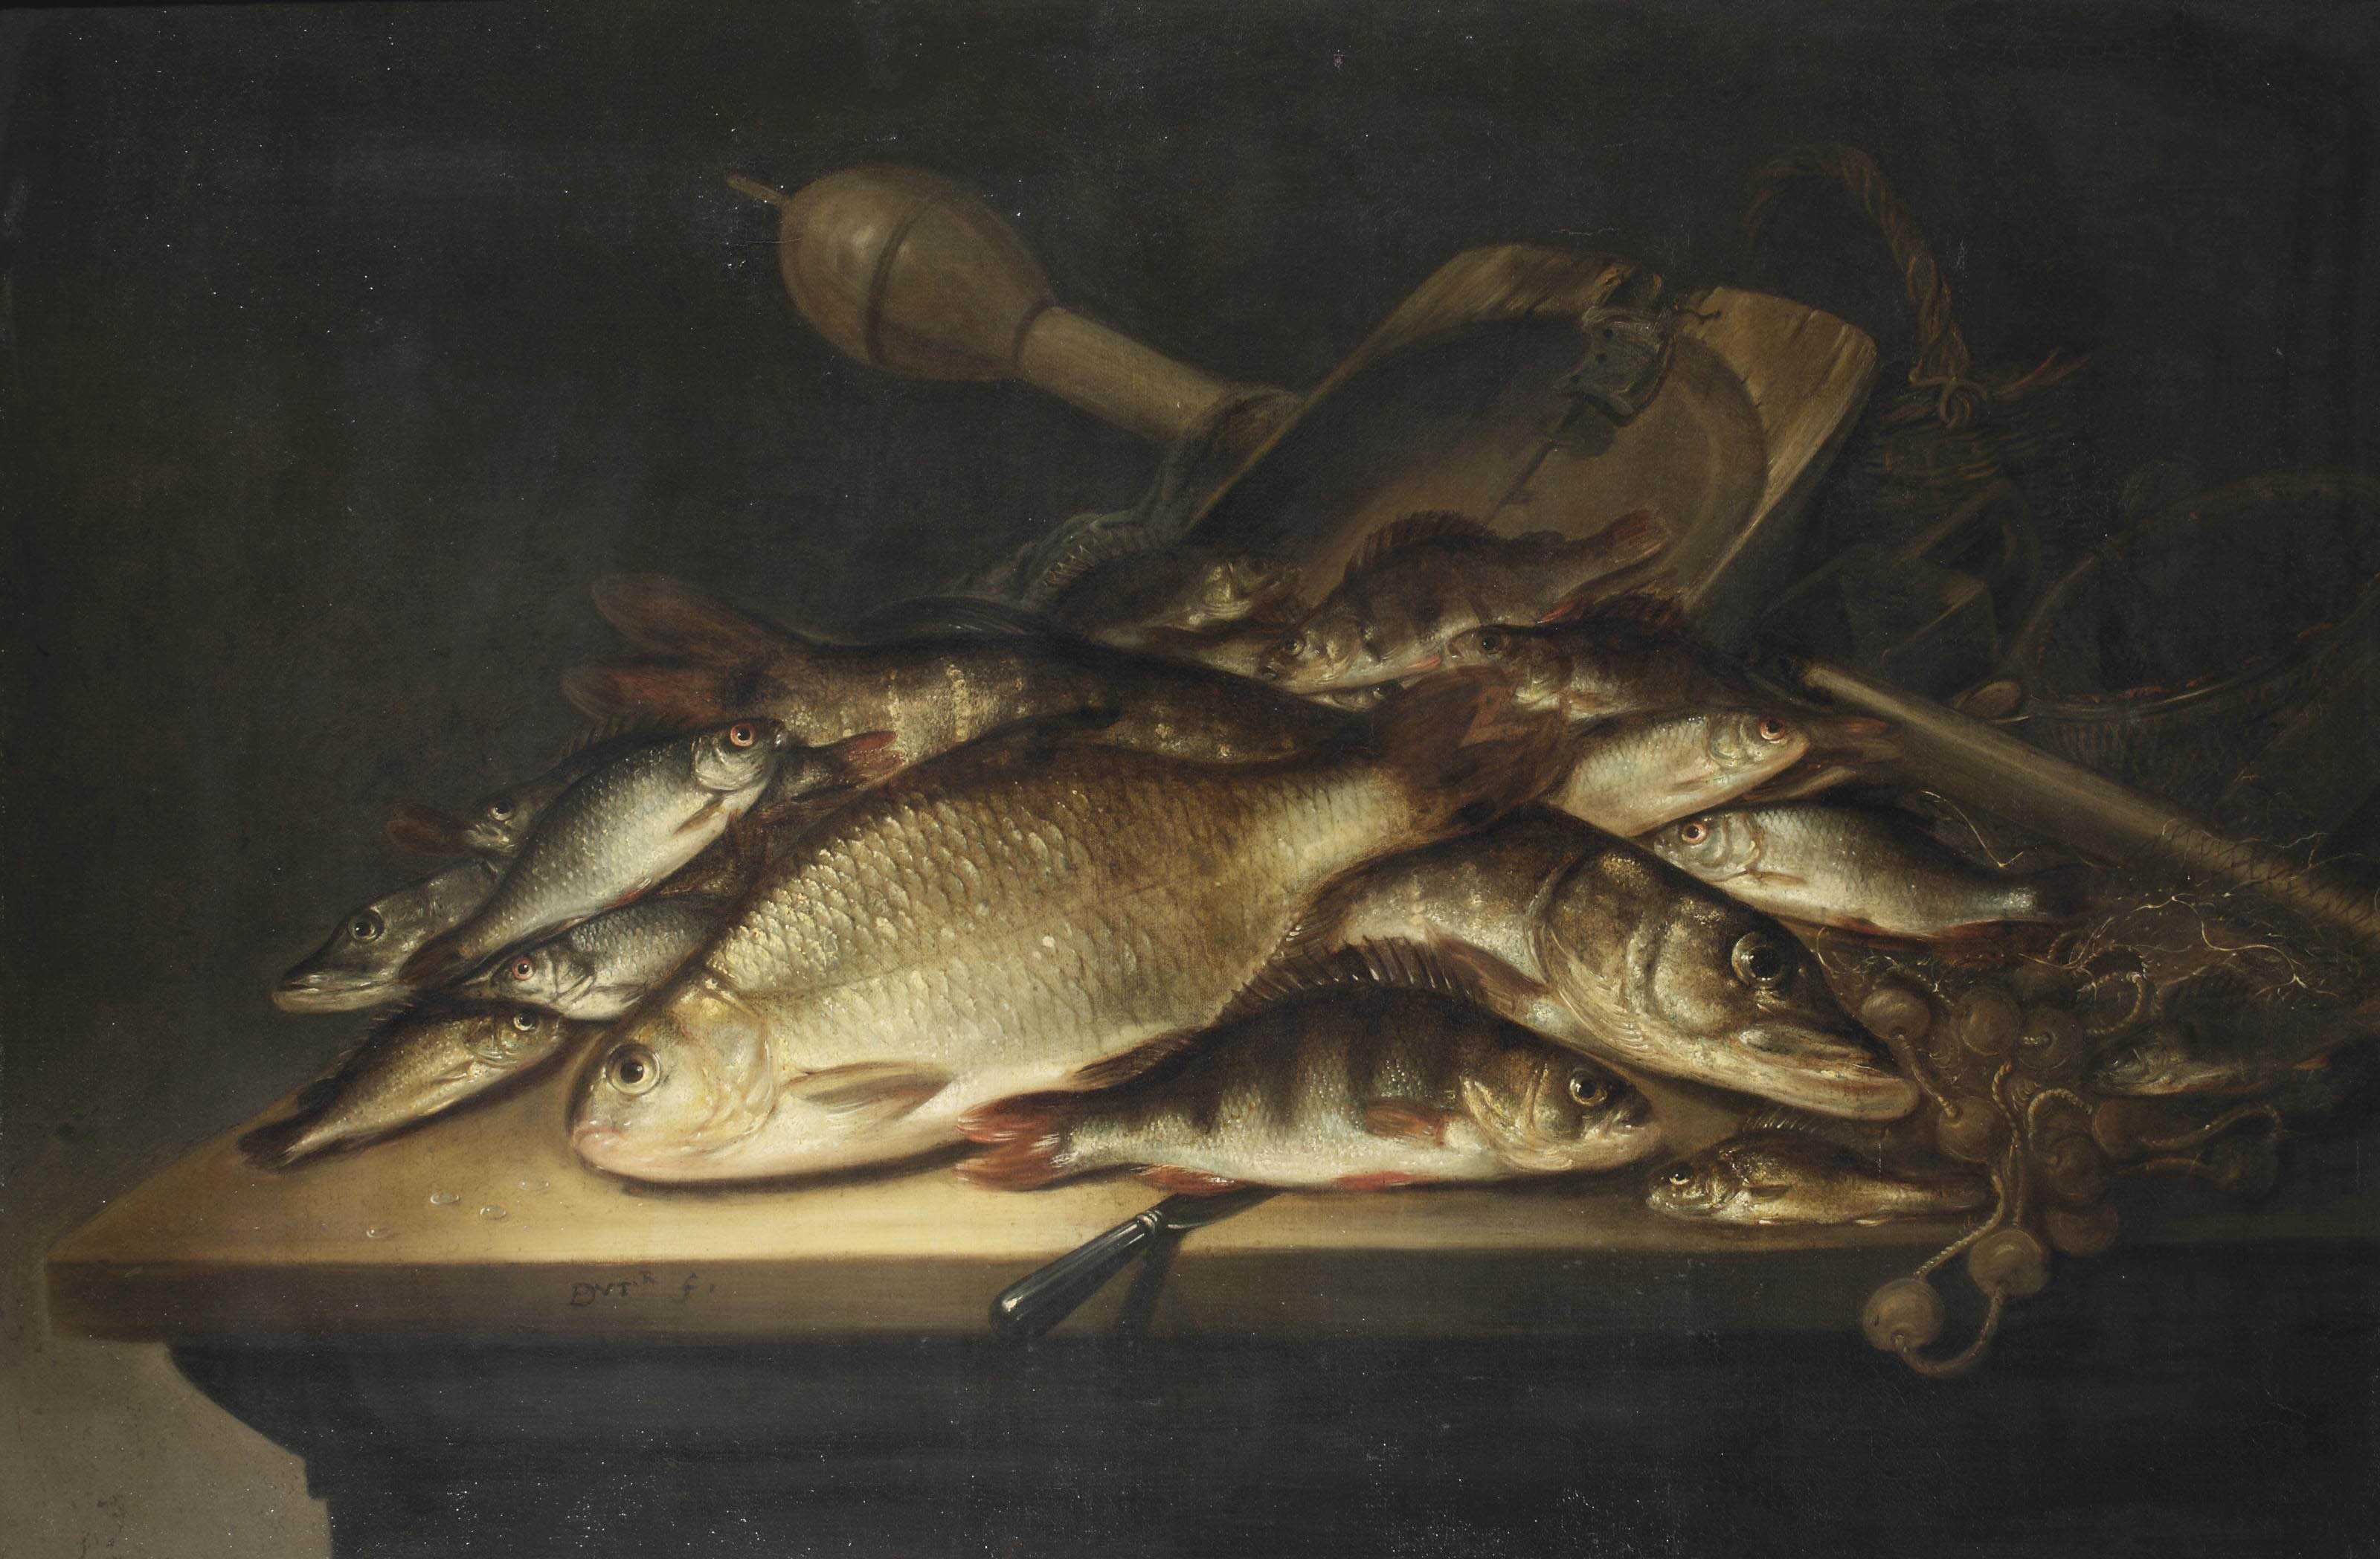 A pike, a carp, a perch, and various other fish, nets and other fishing equipment on a table